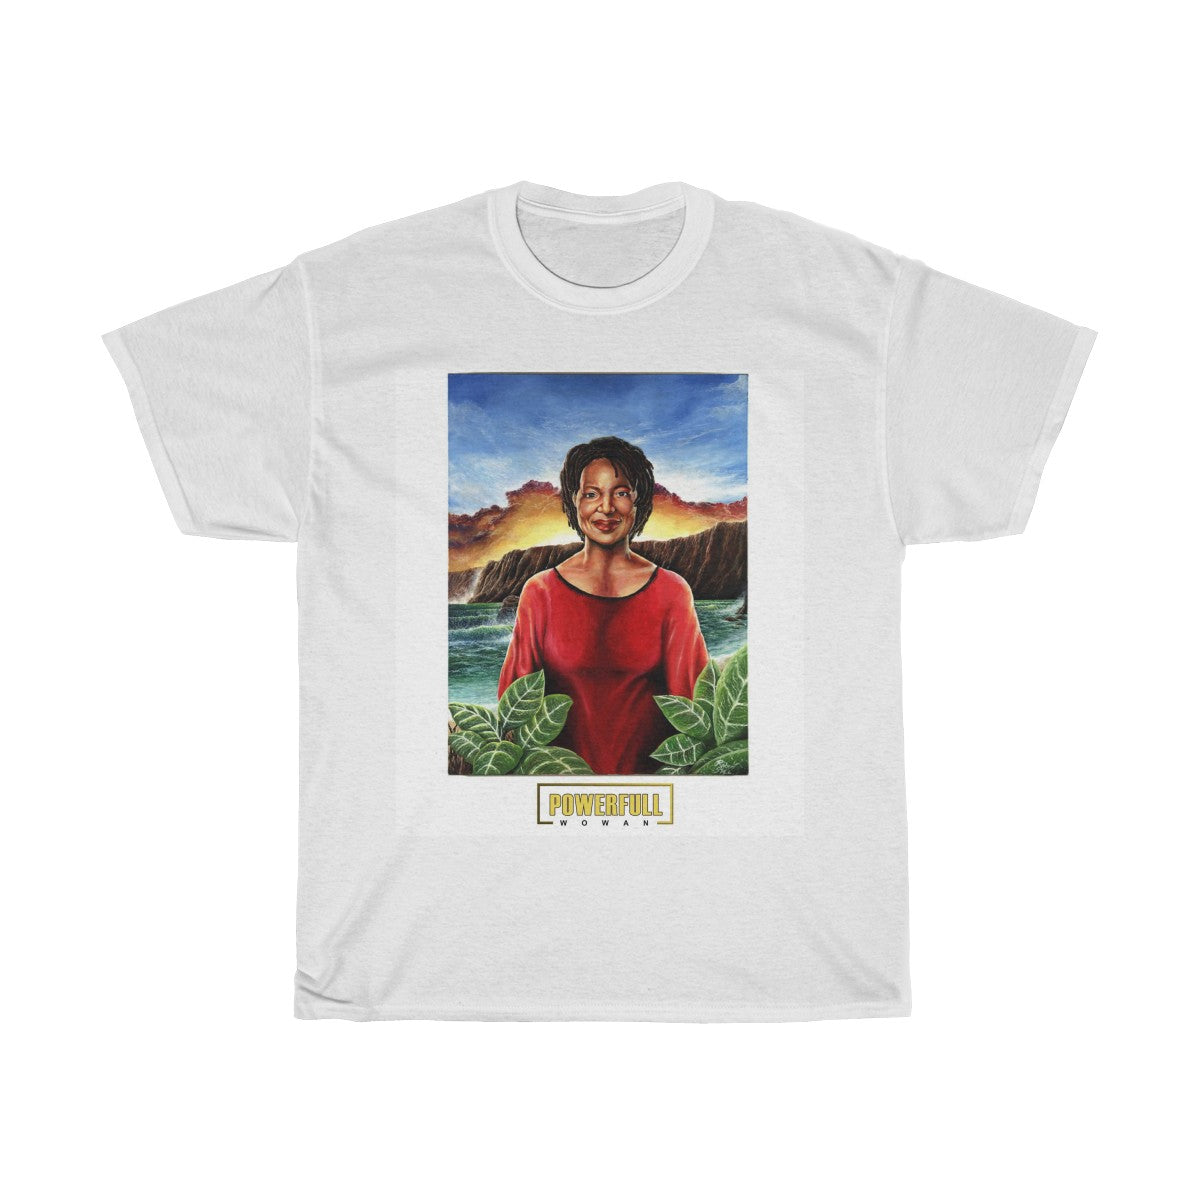 Unisex Heavy Cotton Tee - The LEGACY Collexion